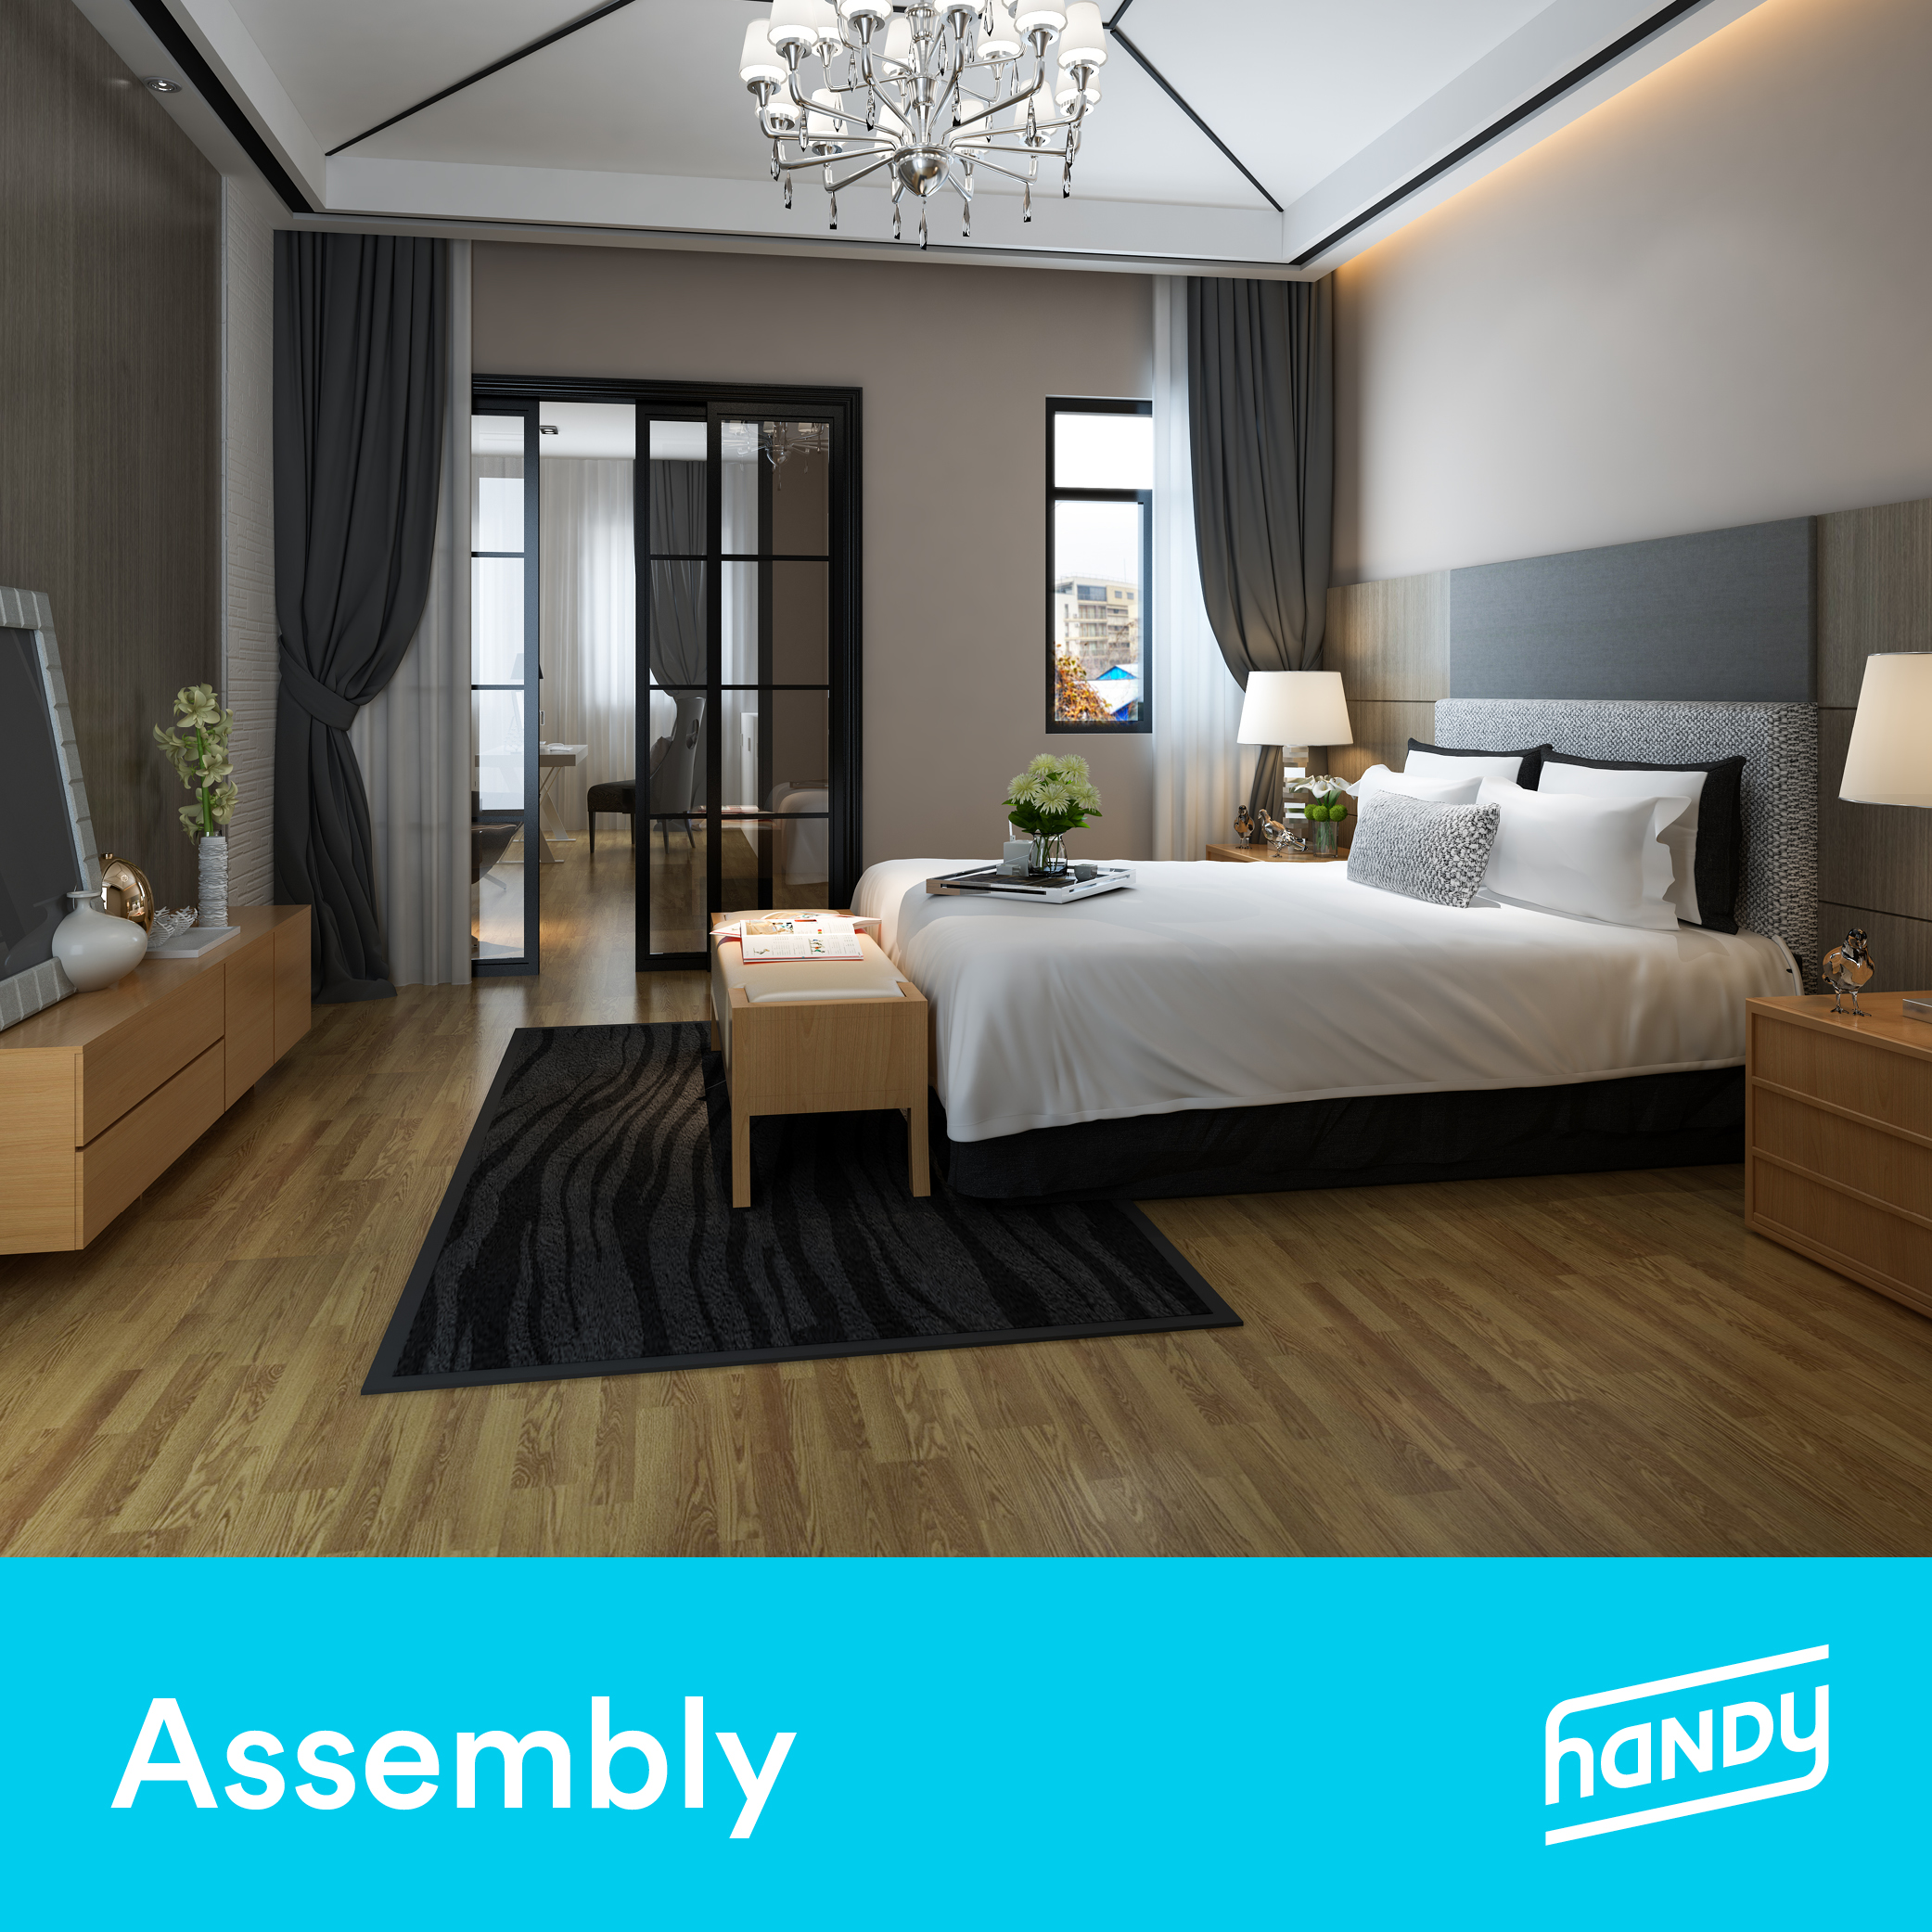 Bedroom Furniture Assembly by Handy